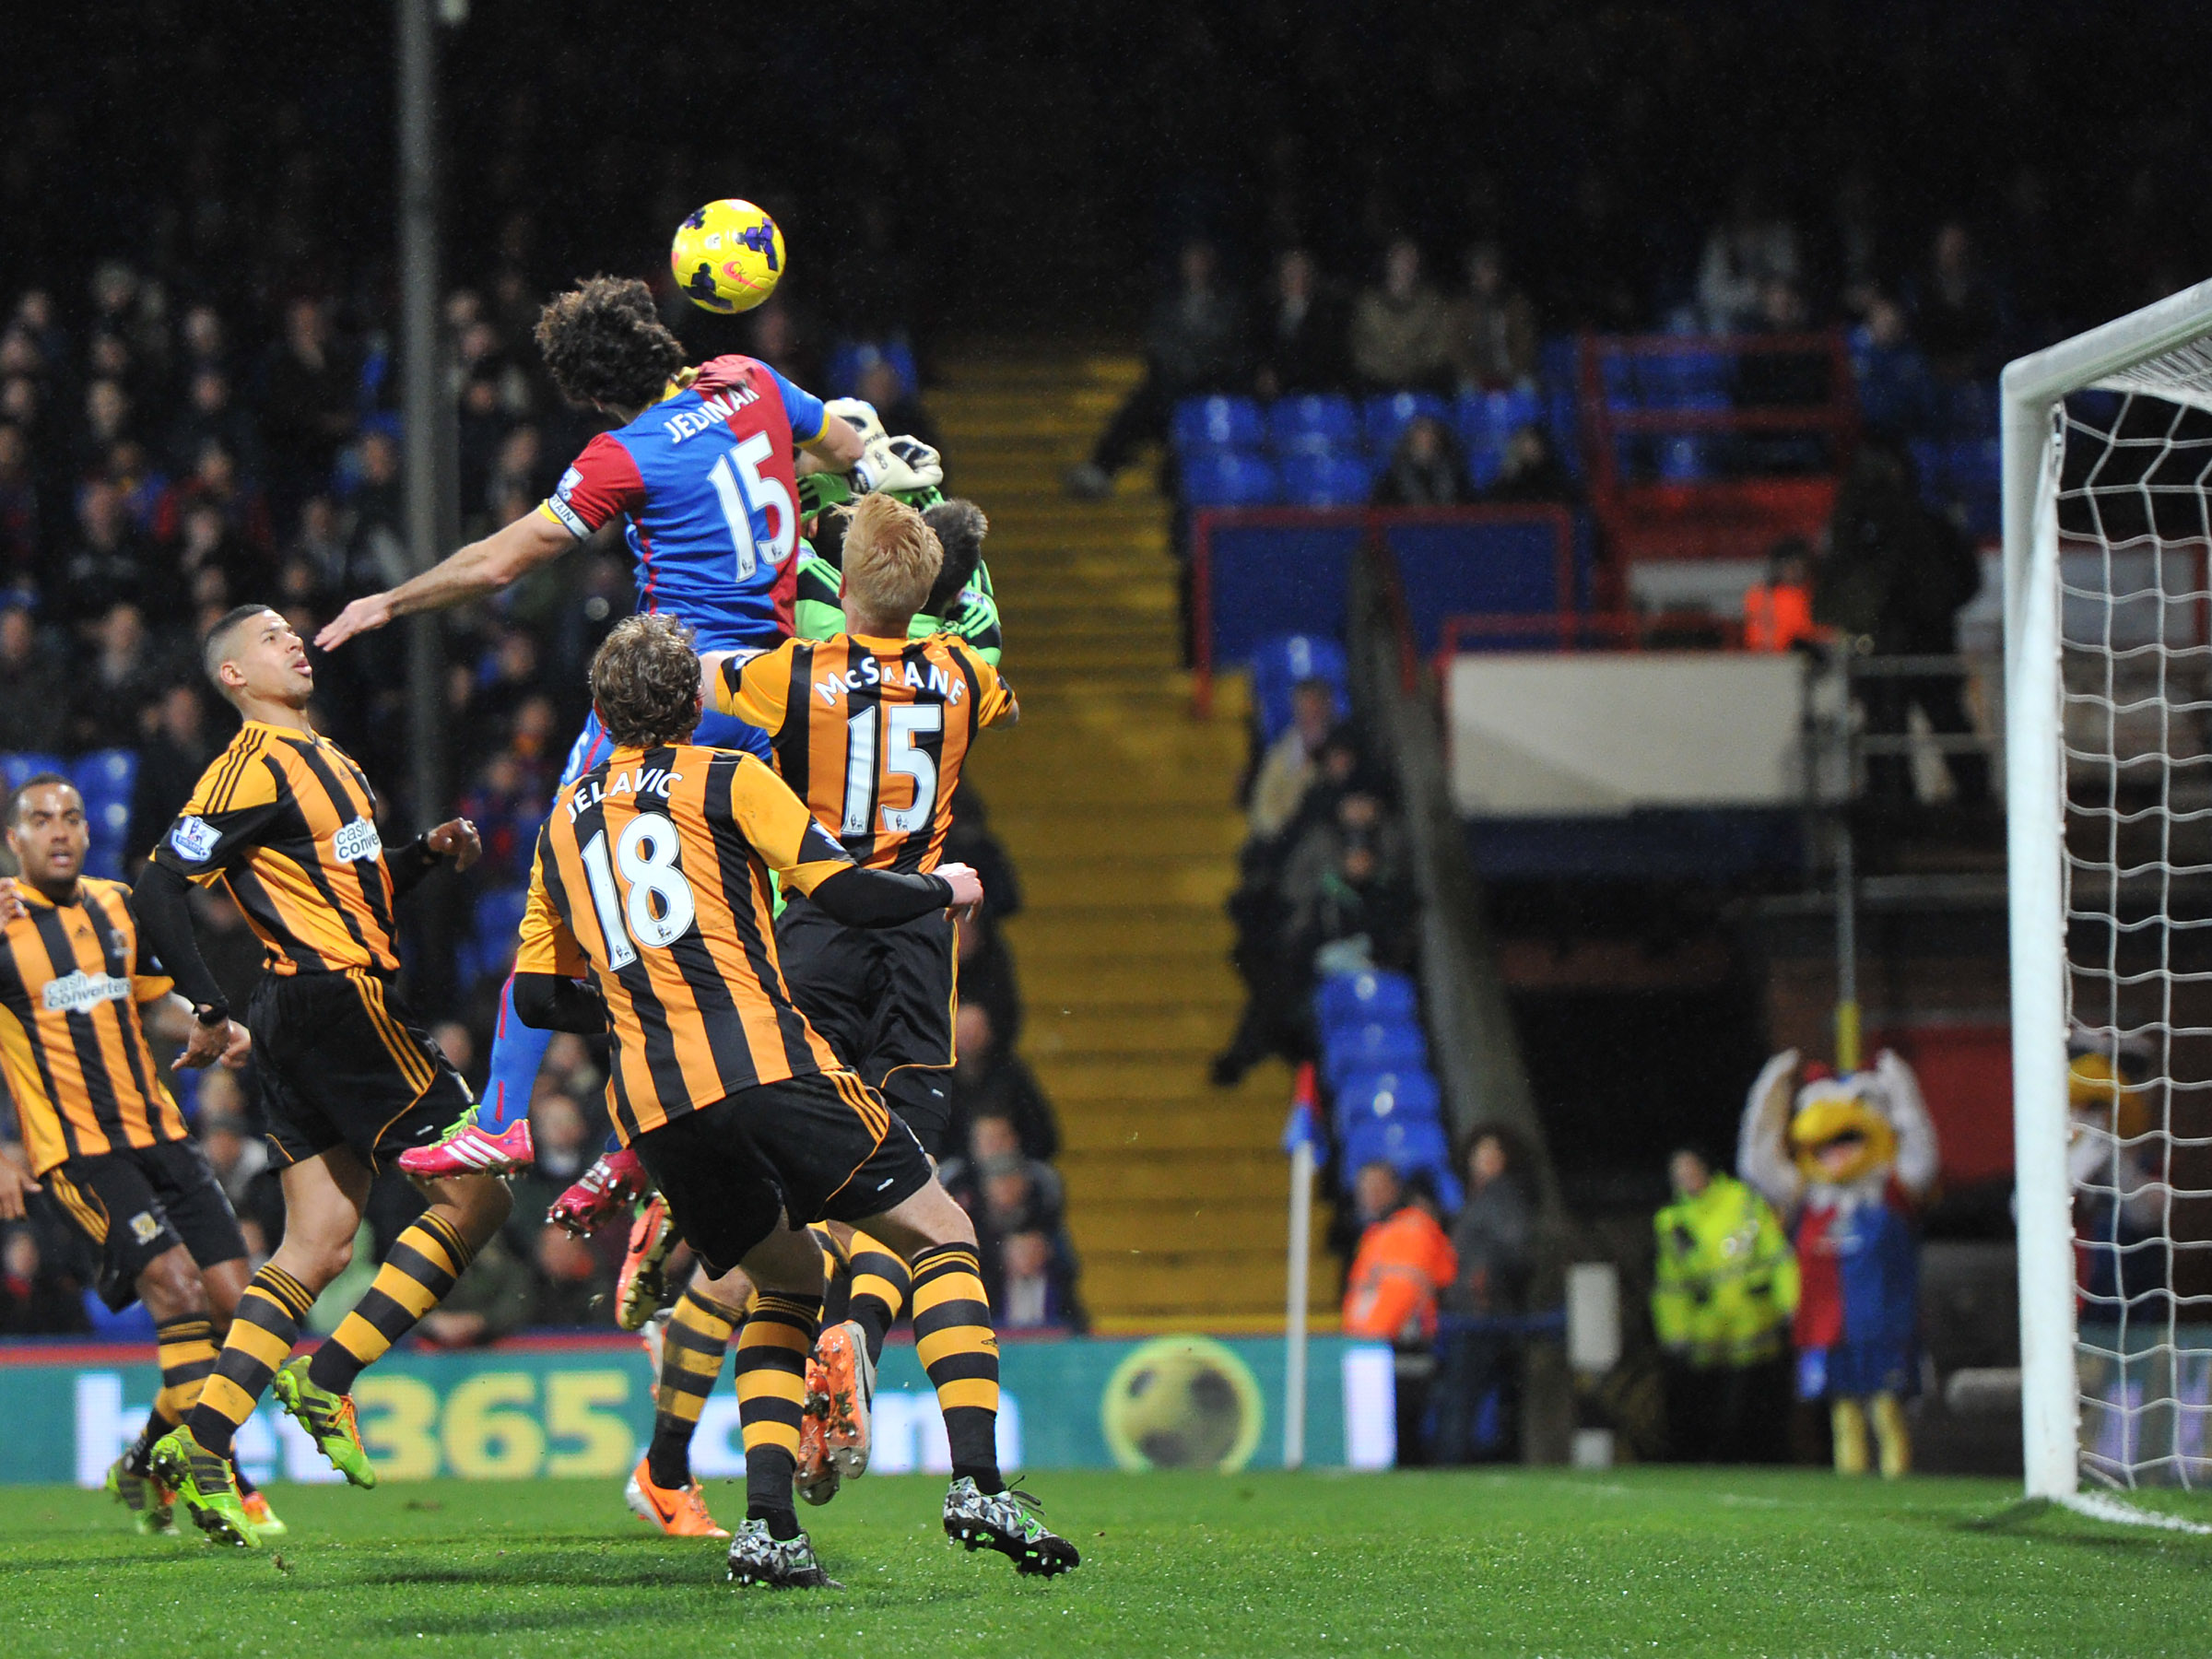 News Shopper: Mile Jedinak heads over